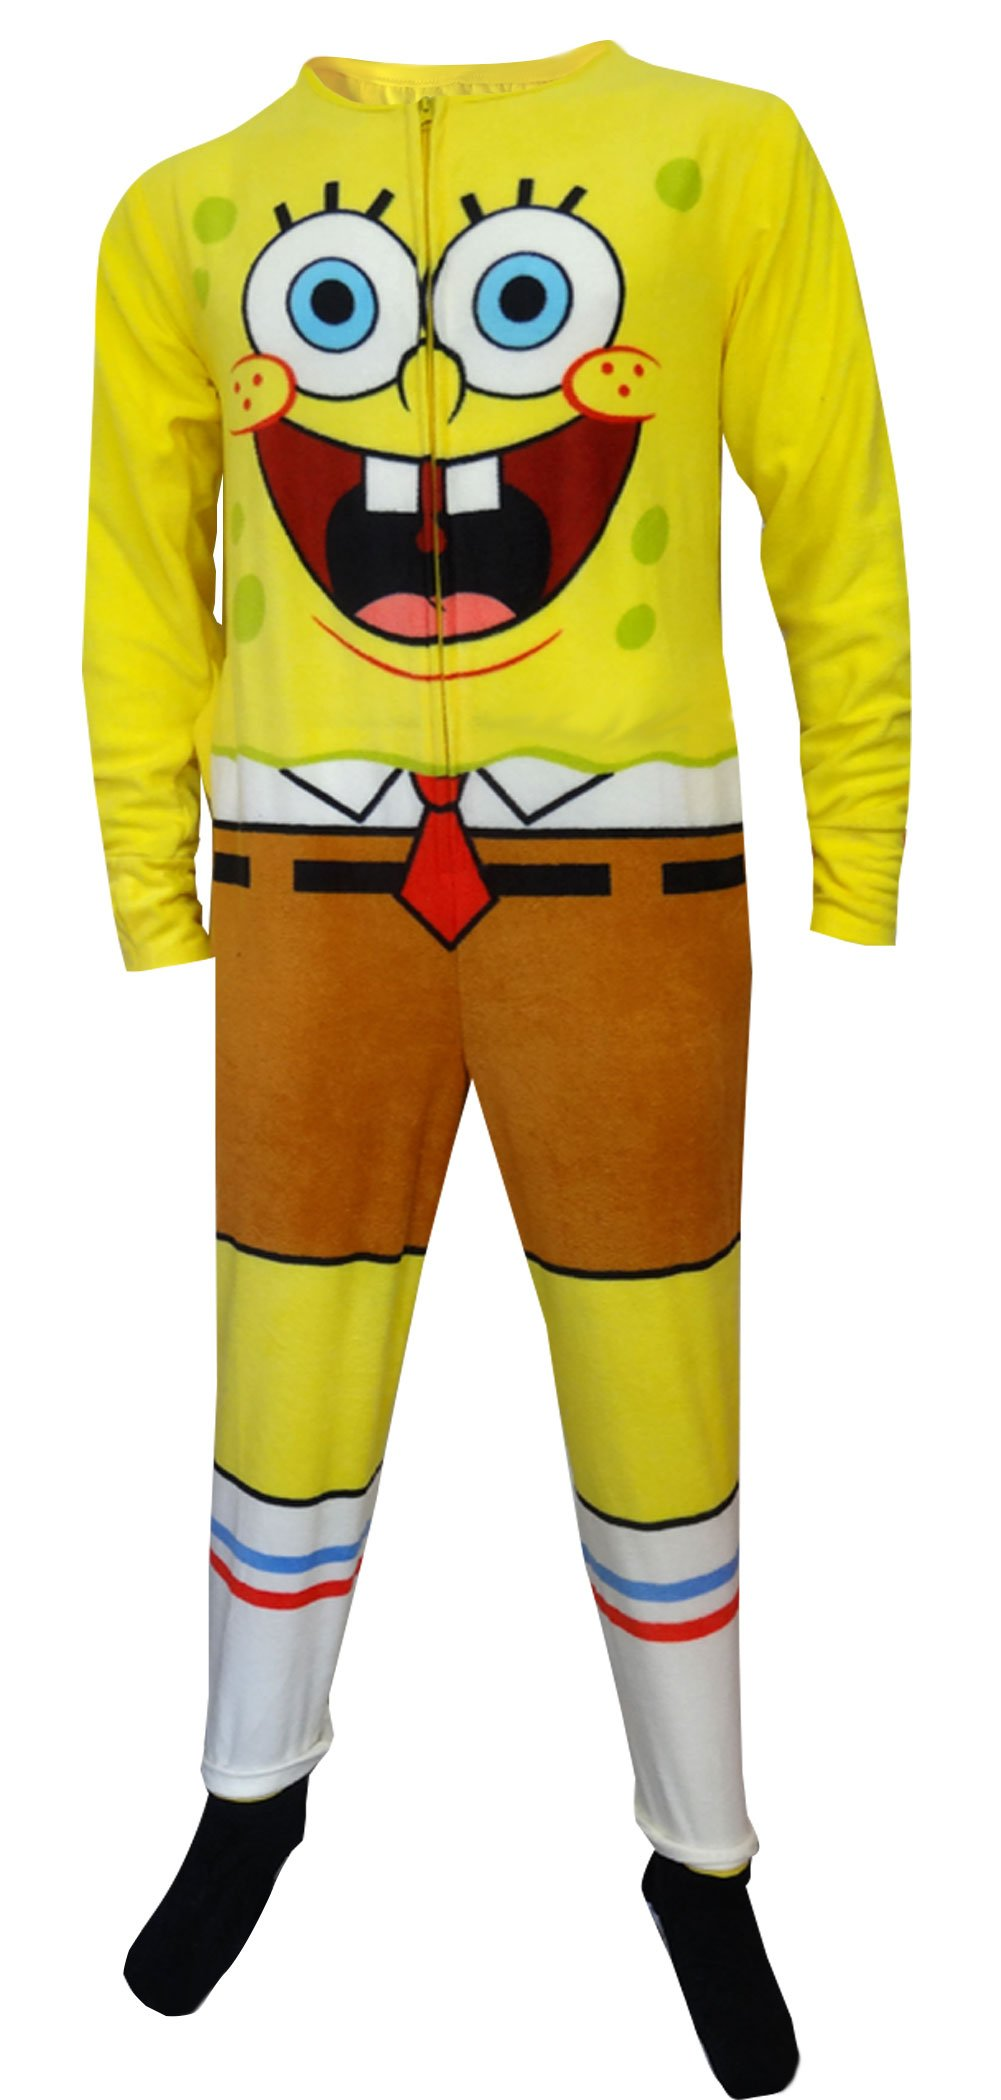 SpongeBob Squarepants Adult Onesie Pajama for men